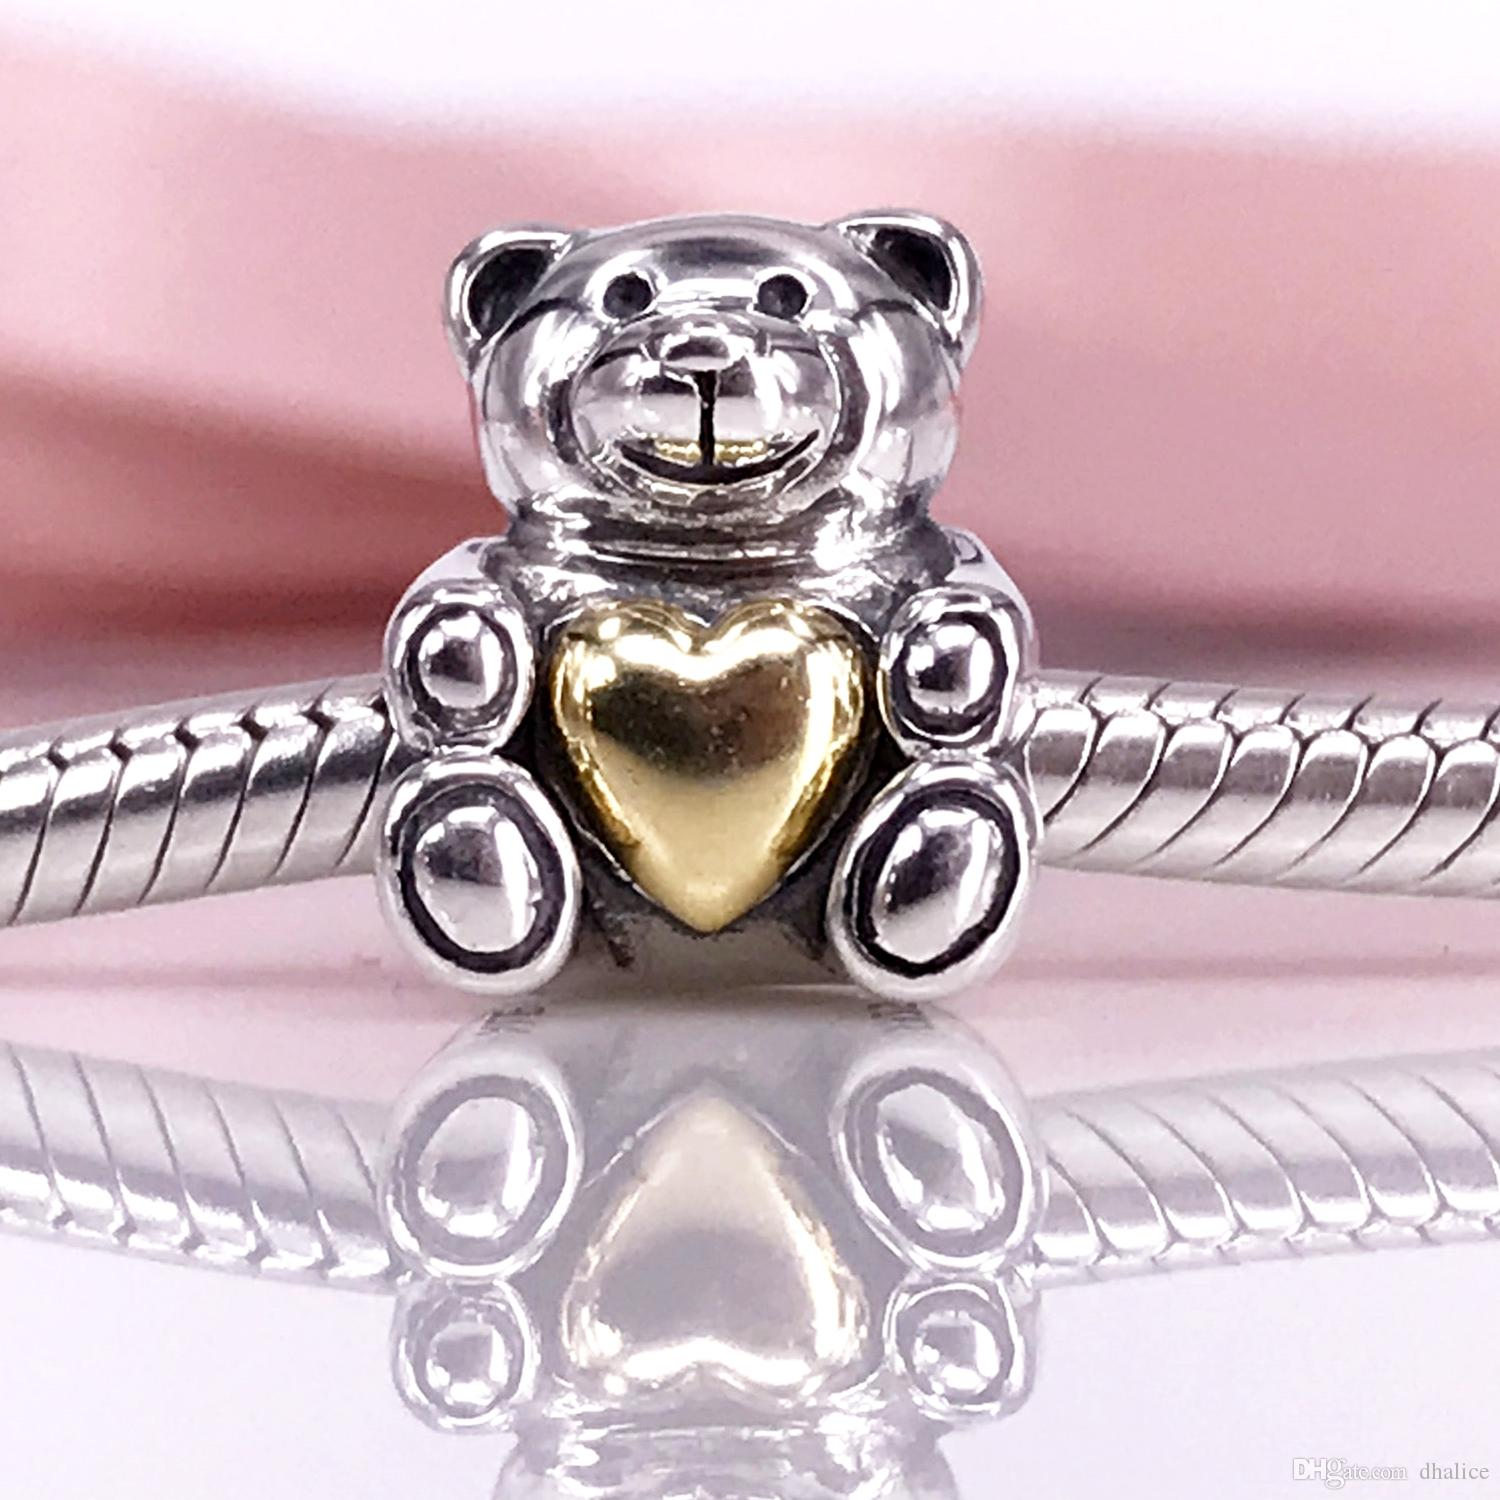 bracelet bracelets charms for your you pin special one compatible charm pandora with make photo